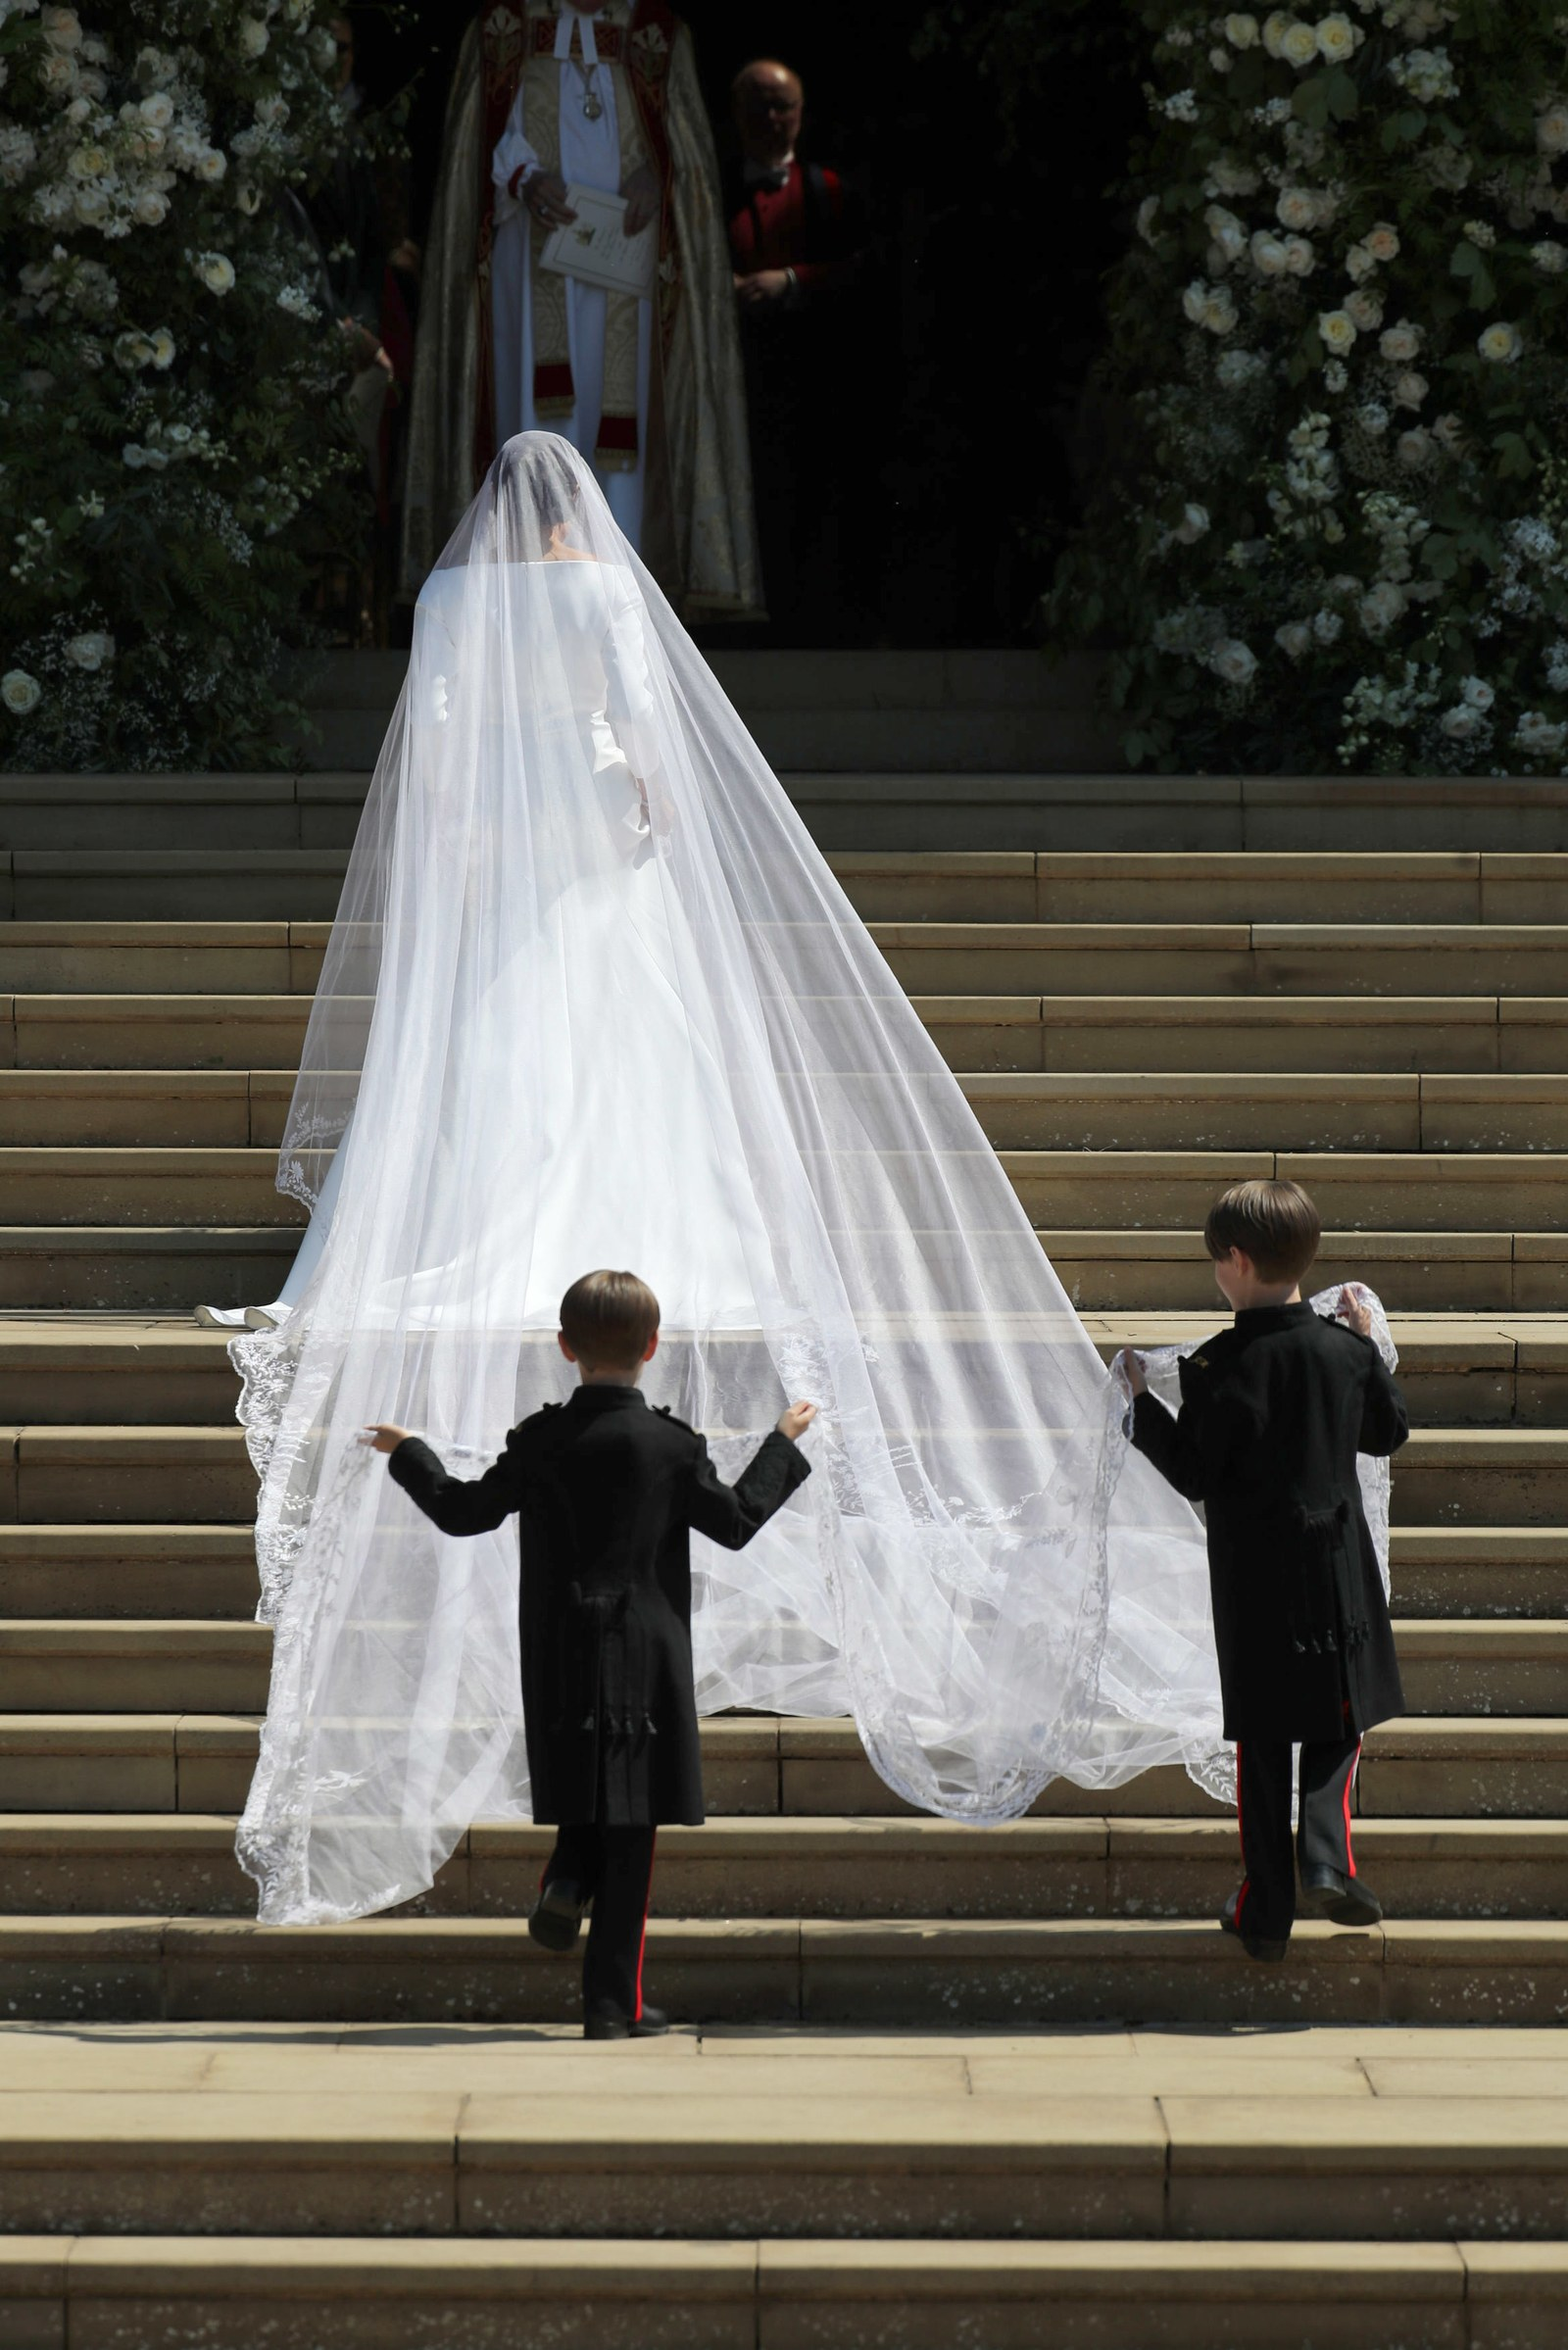 The Duchess of Sussex with her cathedral-length veil. Photo: glamour